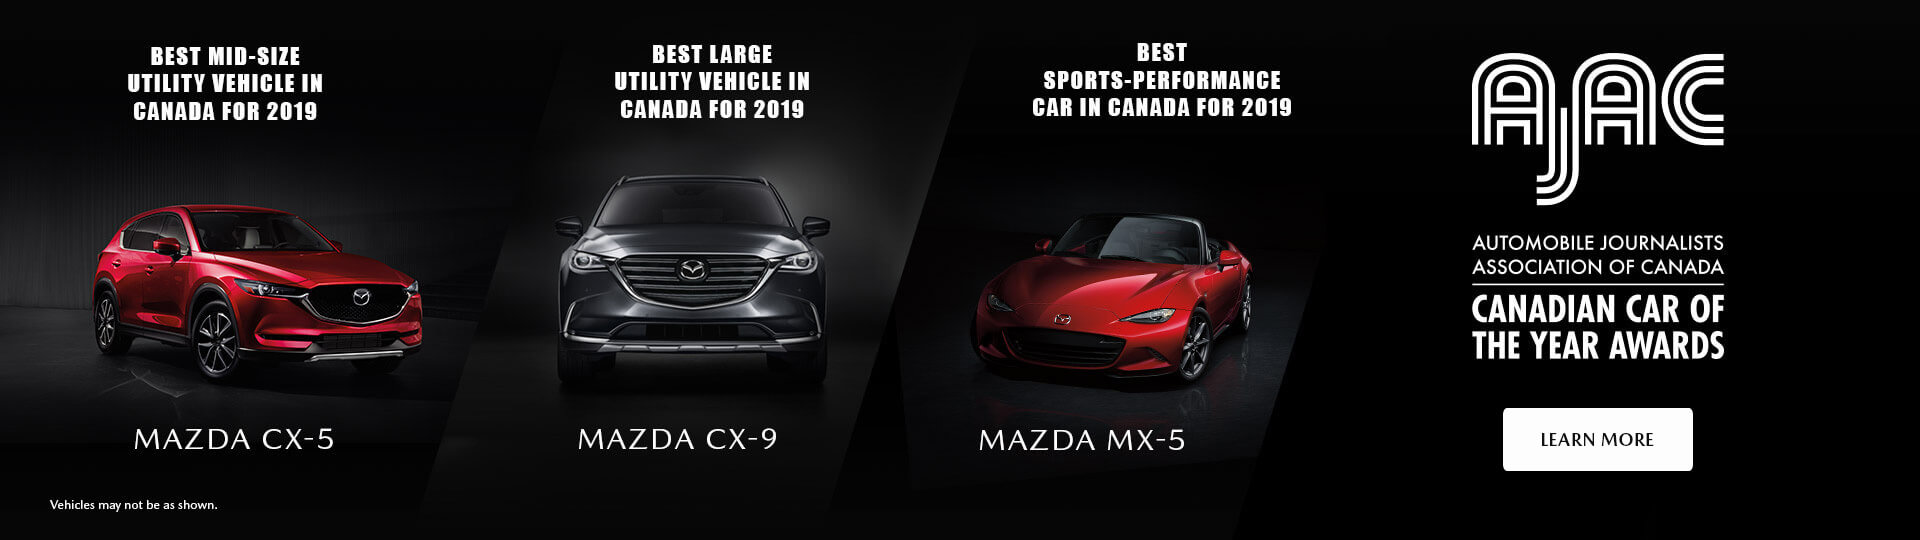 The 2019 Mazda CX-5 was awarded AJAC's Best Mid-Size Utility Vehicle in Canada for 2019, retaining its title. While the 2019 Mazda CX-9 and MX-5 won Best Large Utility Vehicle in Canada for 2019 and Best Sports-Performance Car in Canada for 2019 respectively, with 2019 CX-9 also defendings its title from the previous year.